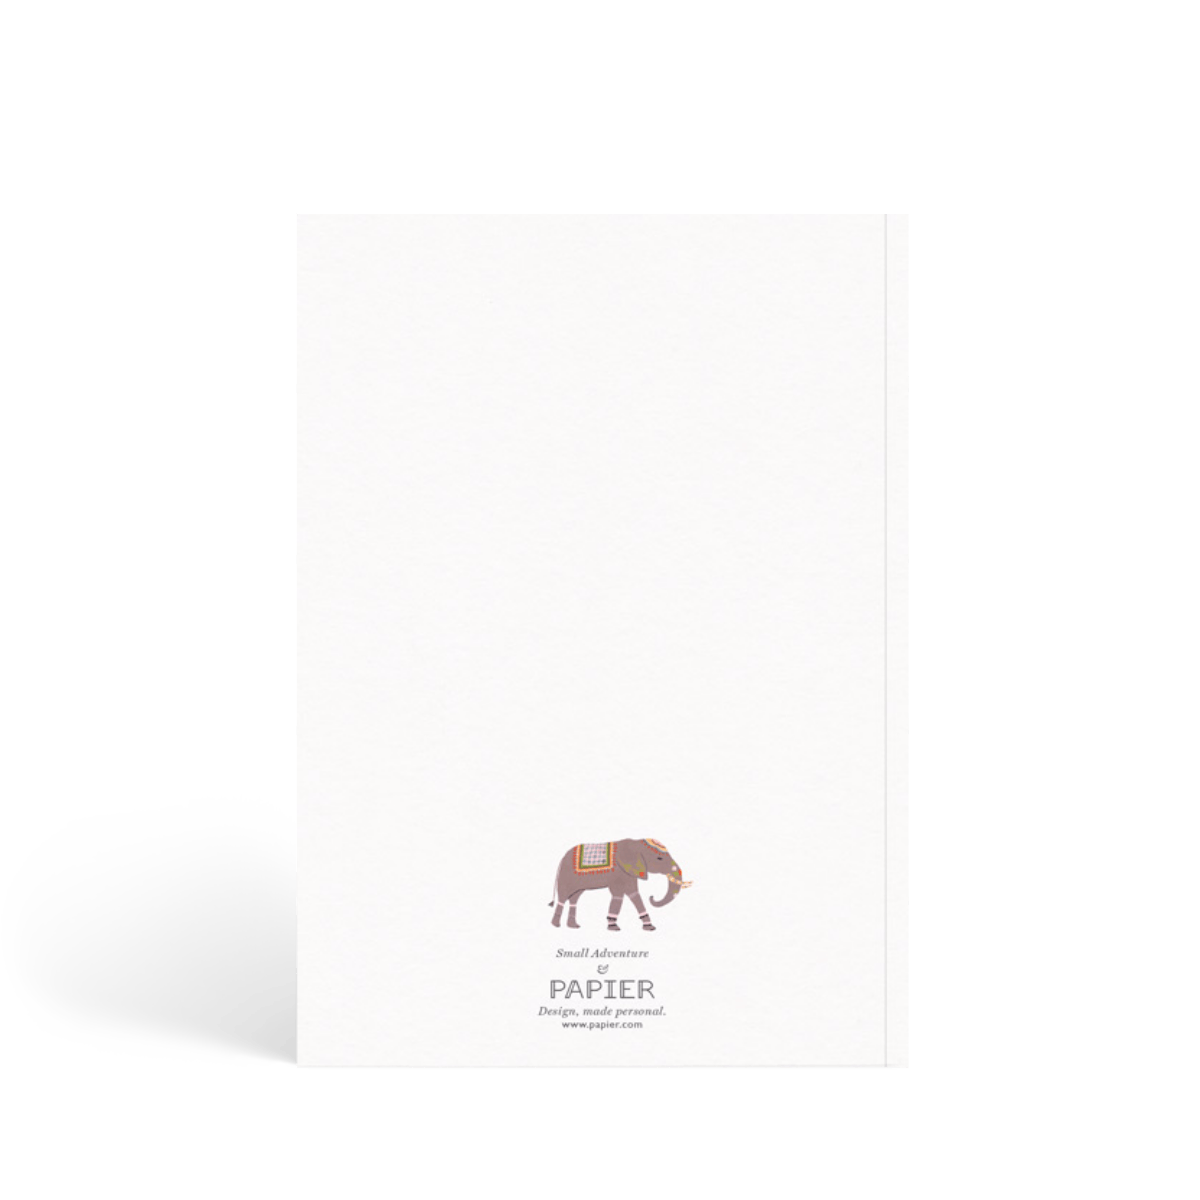 Https%3a%2f%2fwww.papier.com%2fproduct image%2f6254%2f5%2feastern elephant 1607 back 1461164192.png?ixlib=rb 1.1